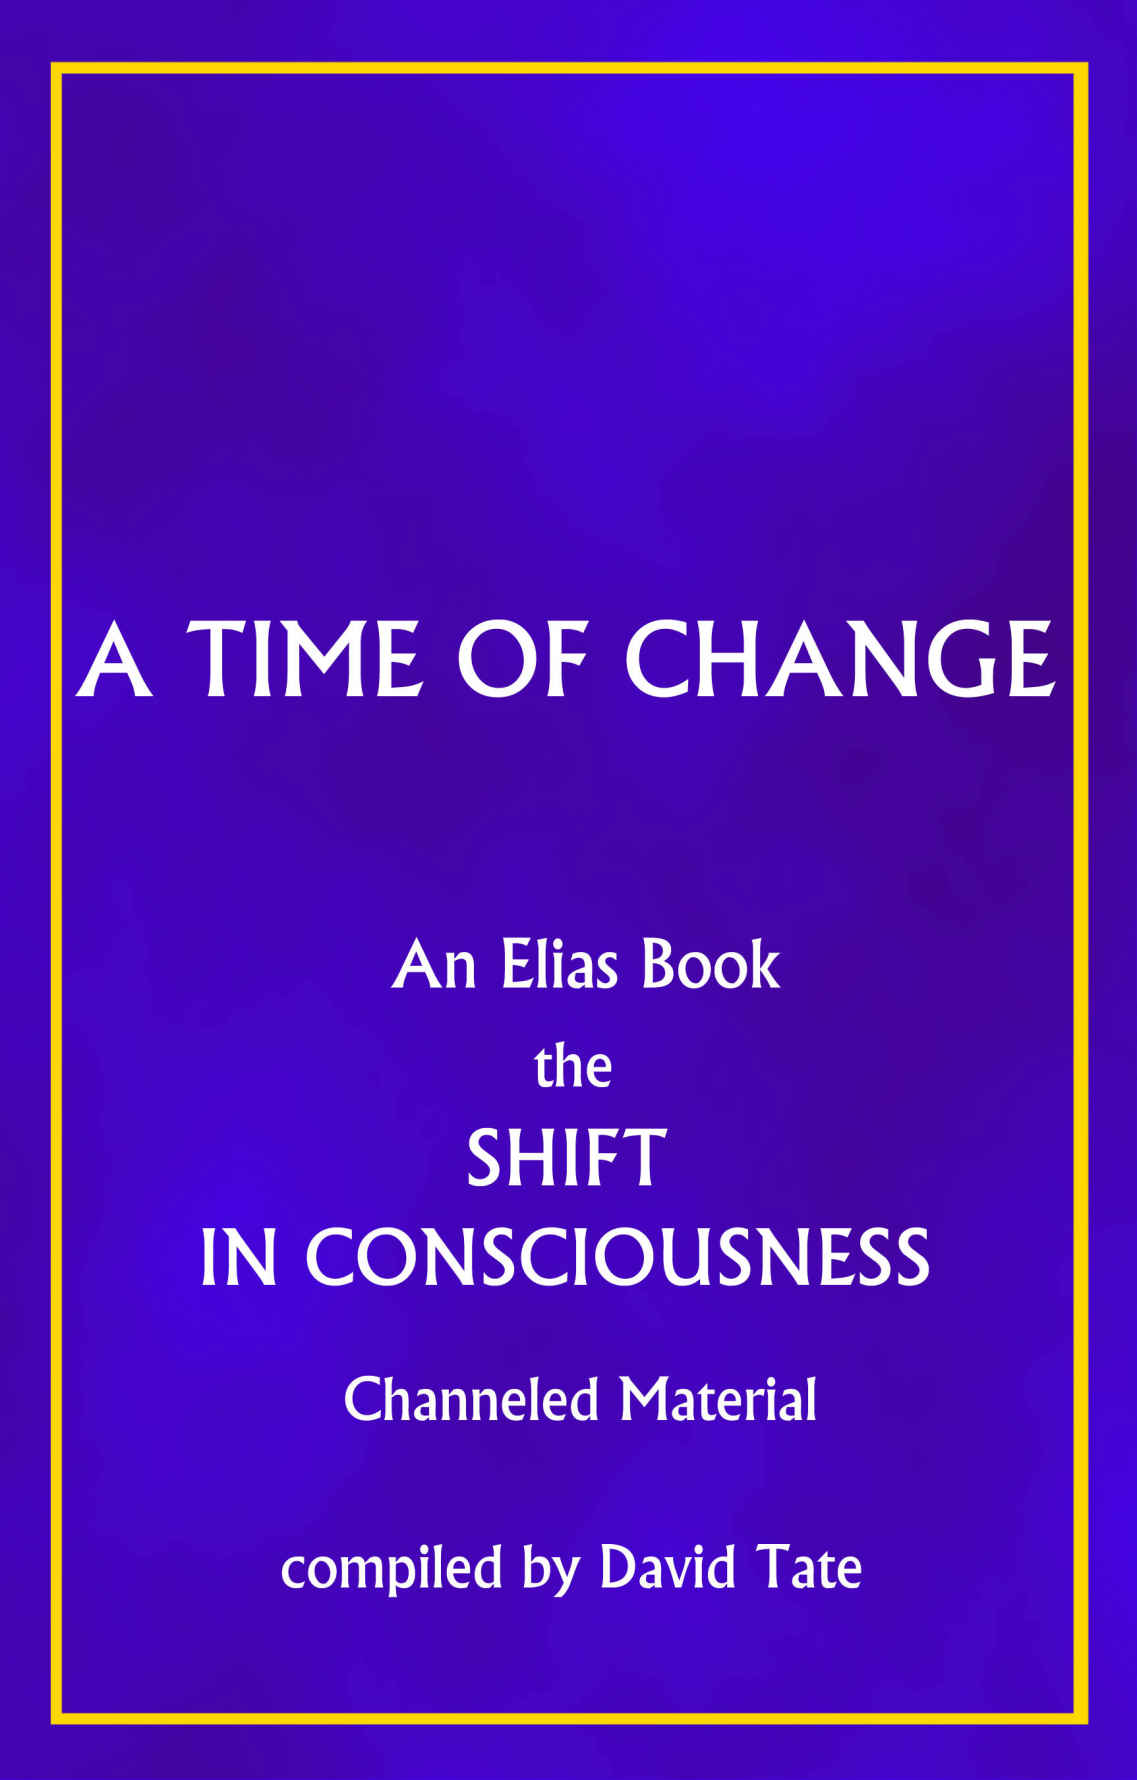 Elias - The Shift - A Time of Change